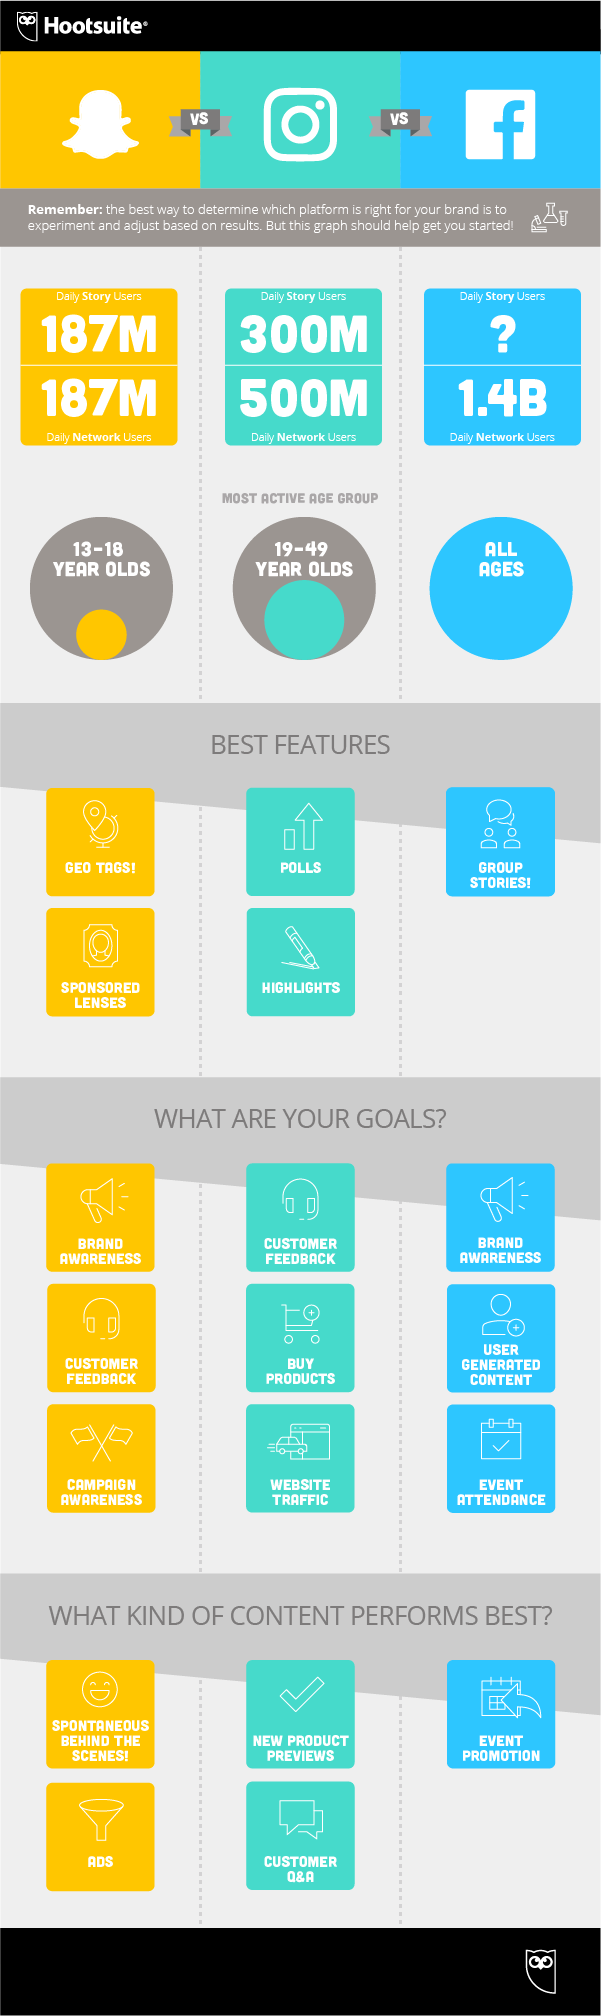 Which Stories Option is Best for Your Brand? [Infographic]